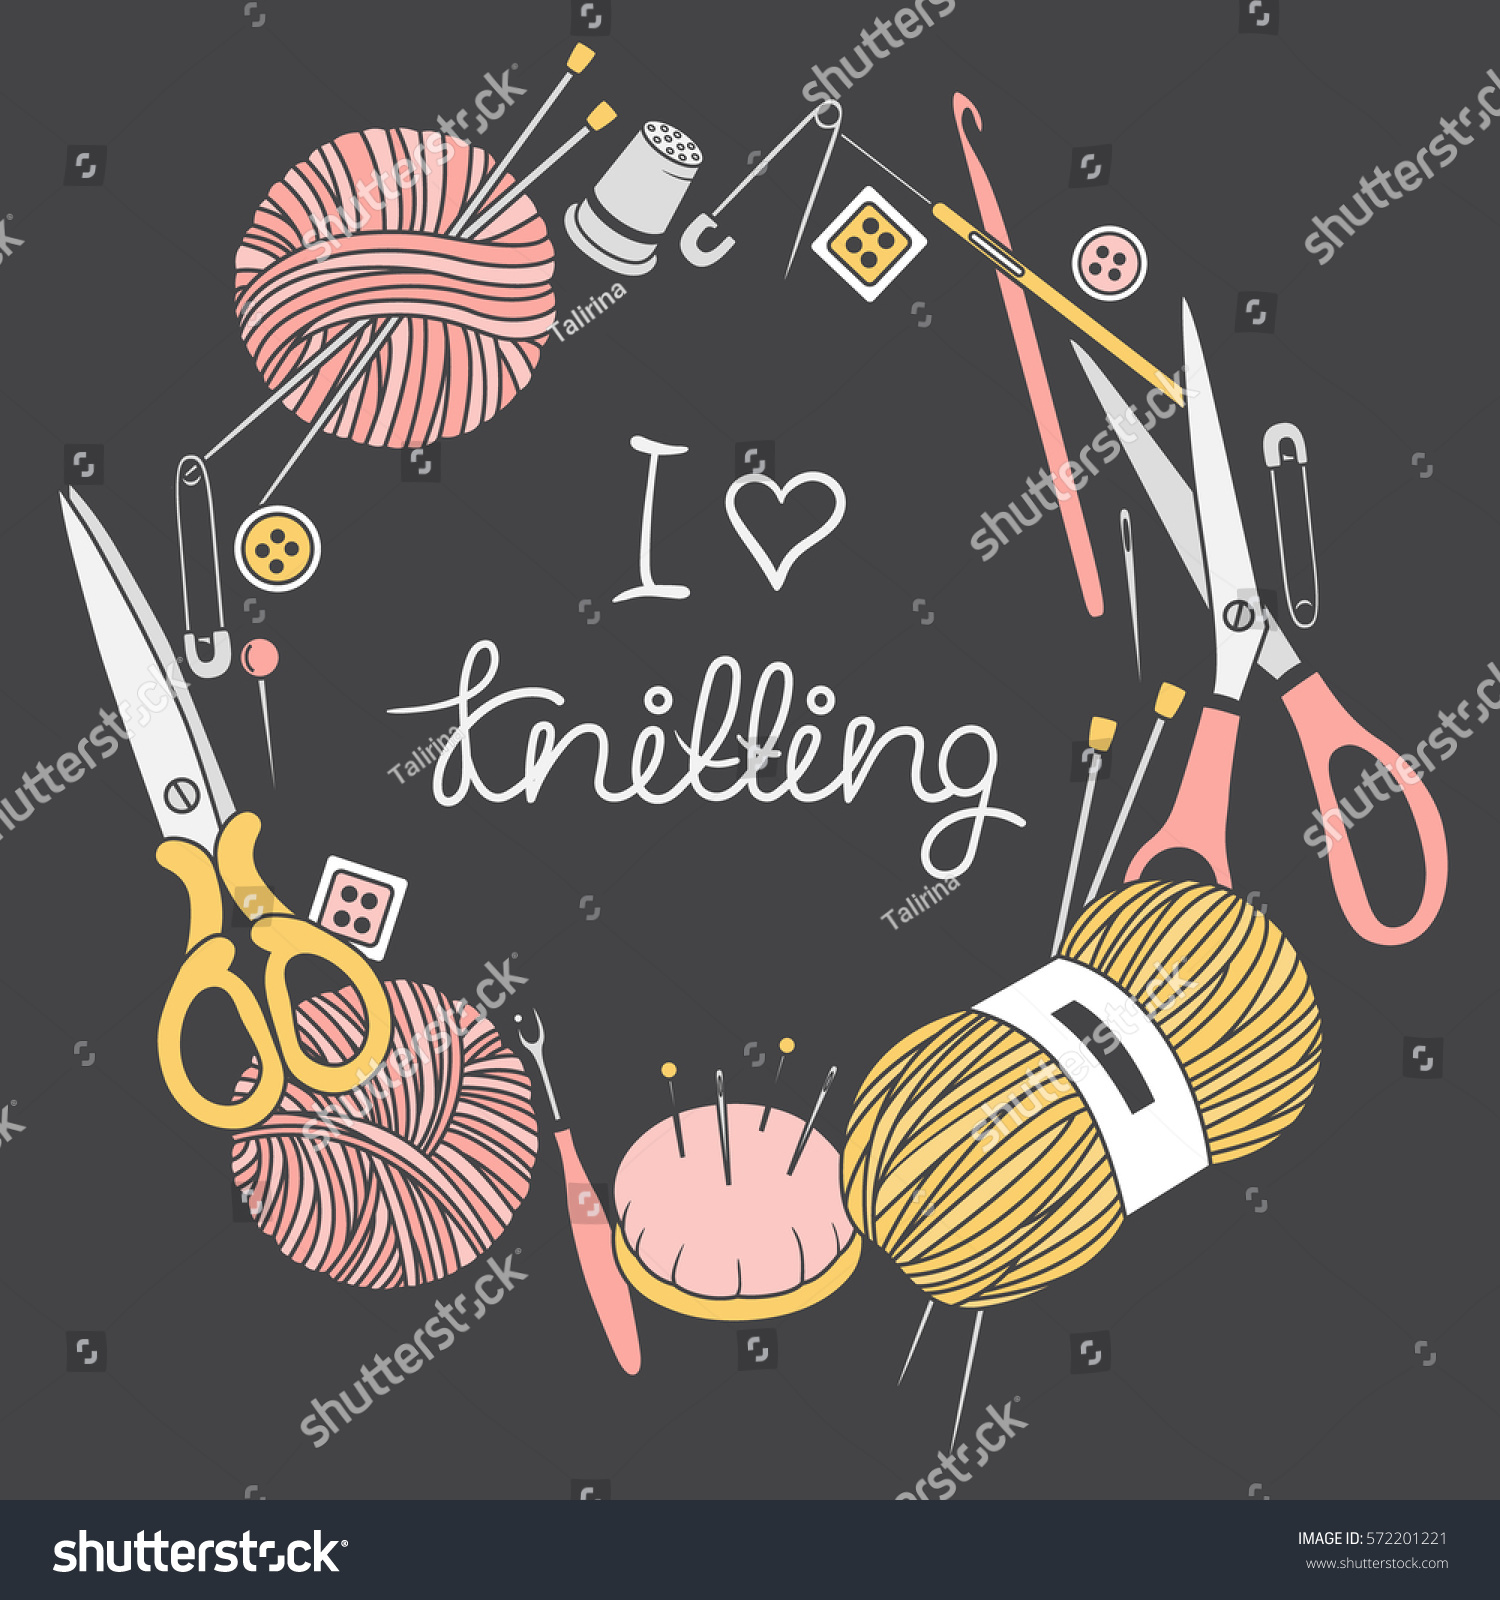 Poster design tools - Set Of Tools For Knitting And Crochet Hand Drawn Icons I Love Knitting